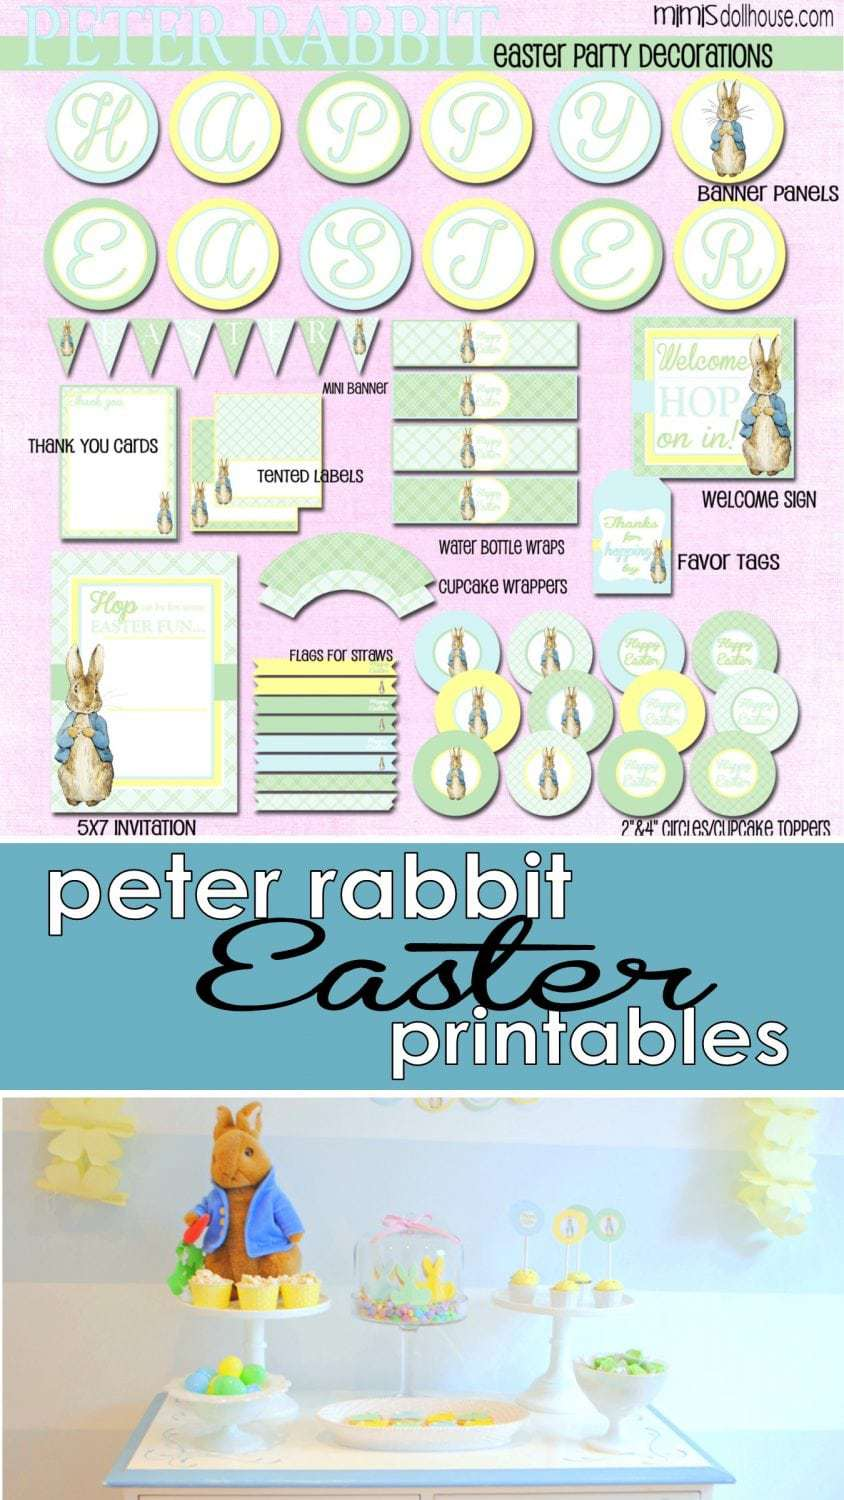 Printable Easter Decorations.  Classic Peter Rabbit Printable Easter Decorations.  Easter Printables